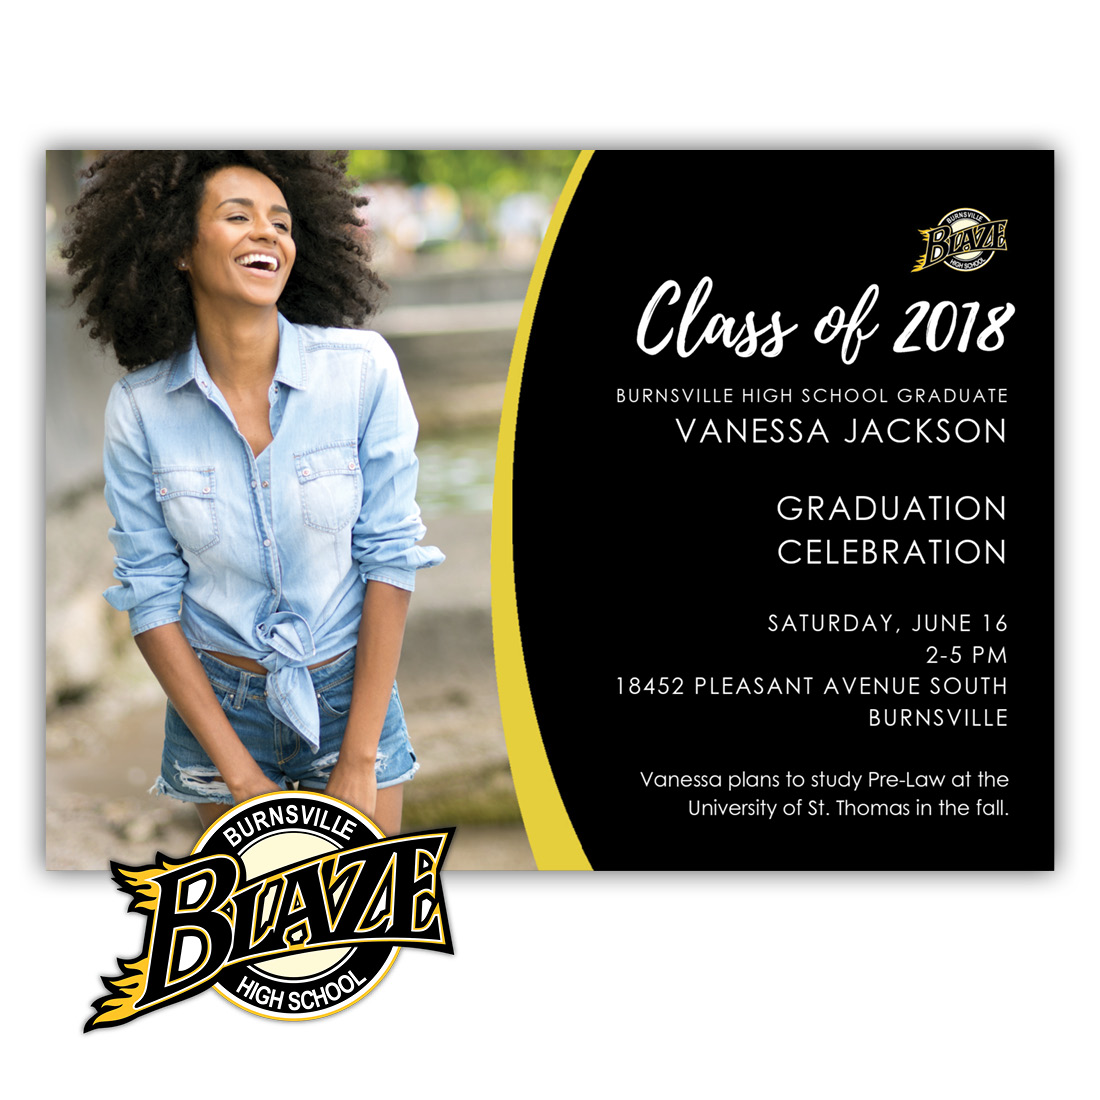 School Spirit, Burnsville - Focus in Pix Graduation Party Invitation or Announcement